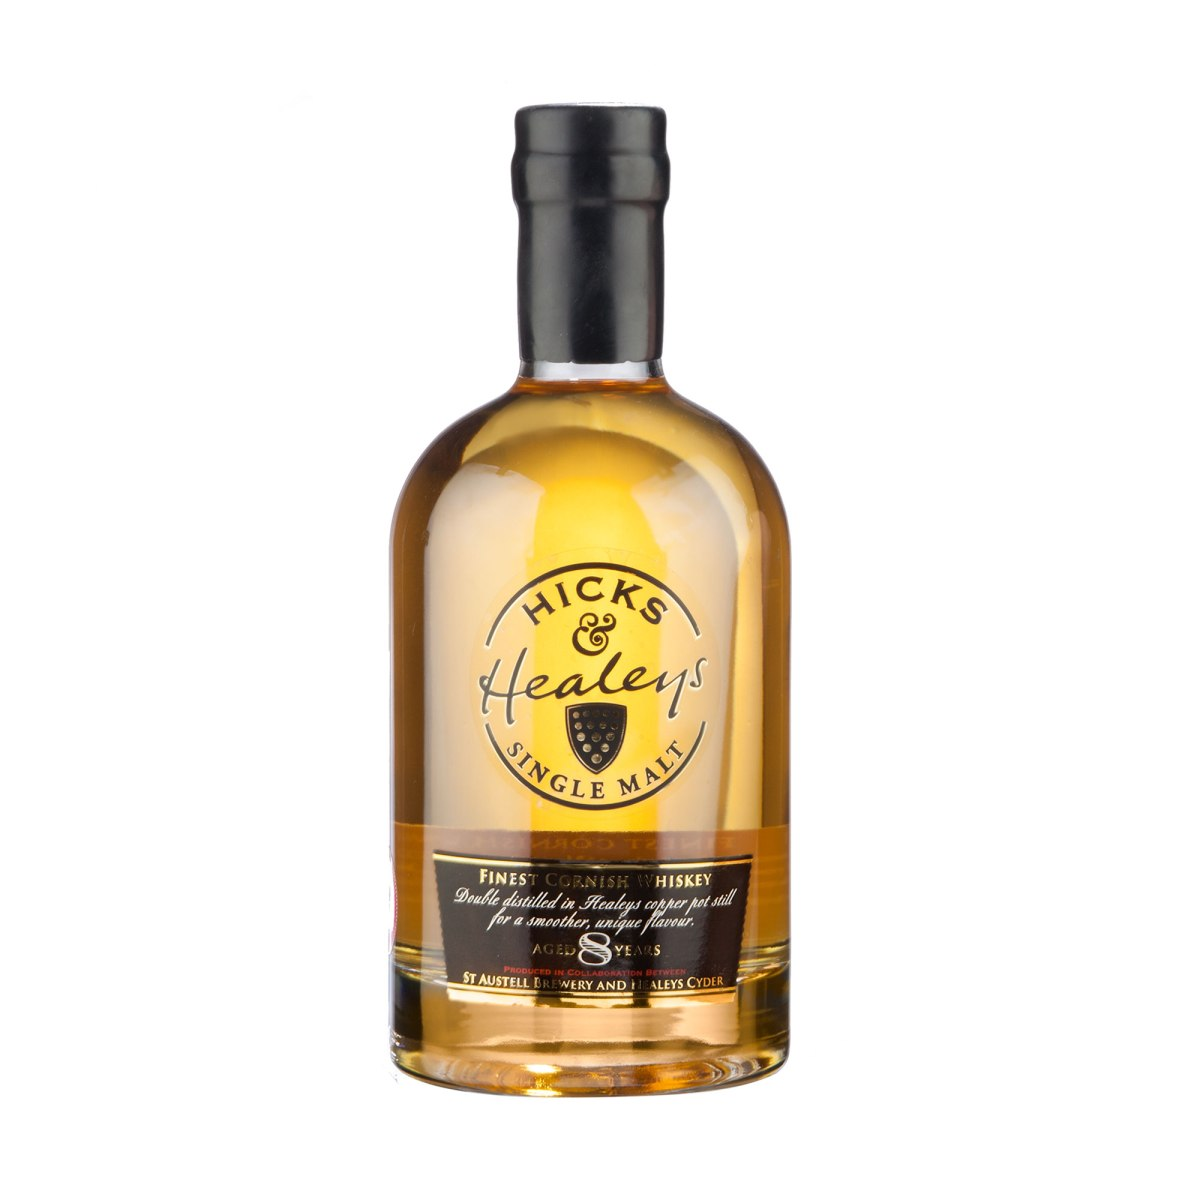 Hicks & Healey 8 Year Old Cornish Single Malt ~ 42.5% (Hicks & Healey)